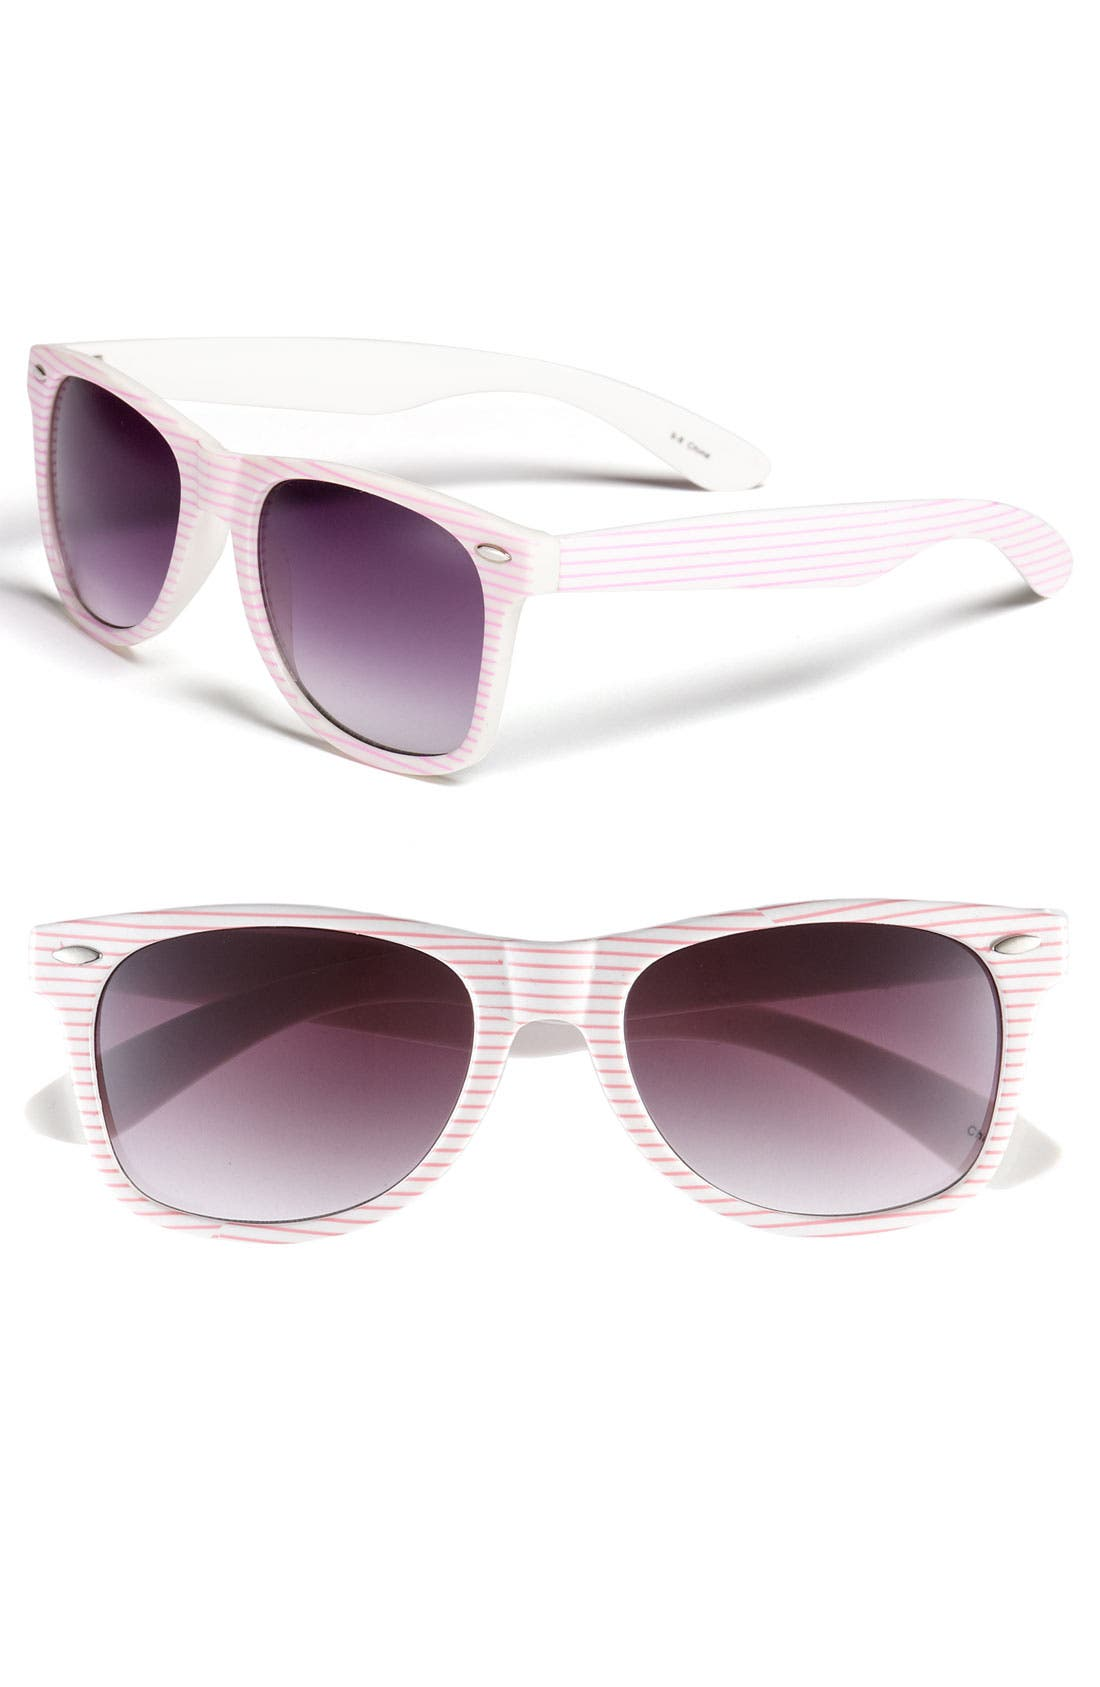 Main Image - Icon Eyewear Striped Retro Sunglasses